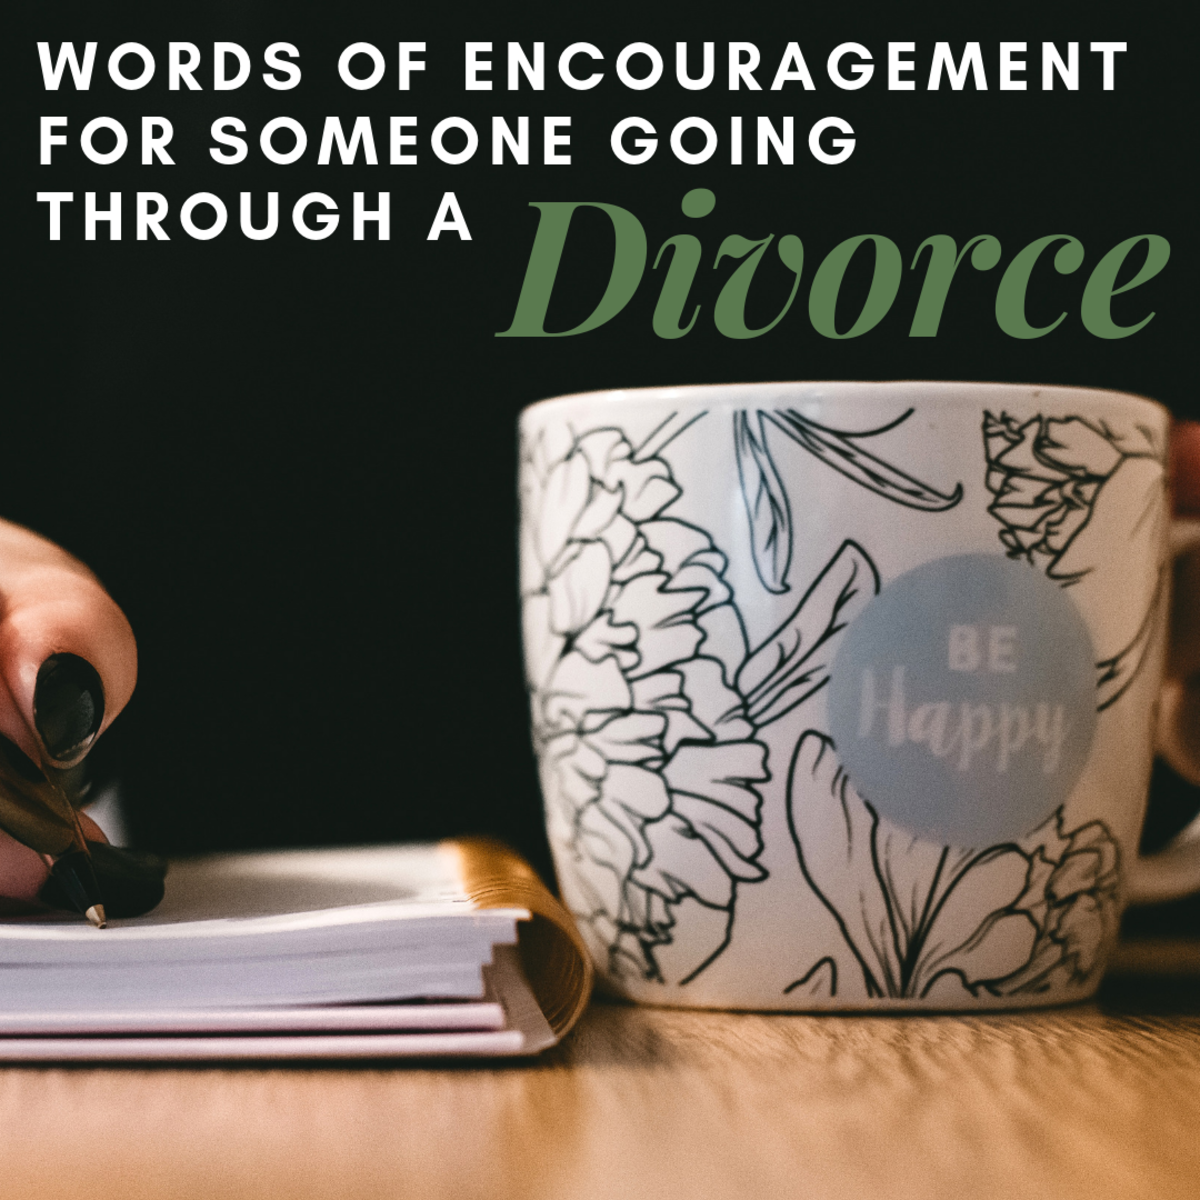 Words Of Encouragement And Spiritual Messages For Someone